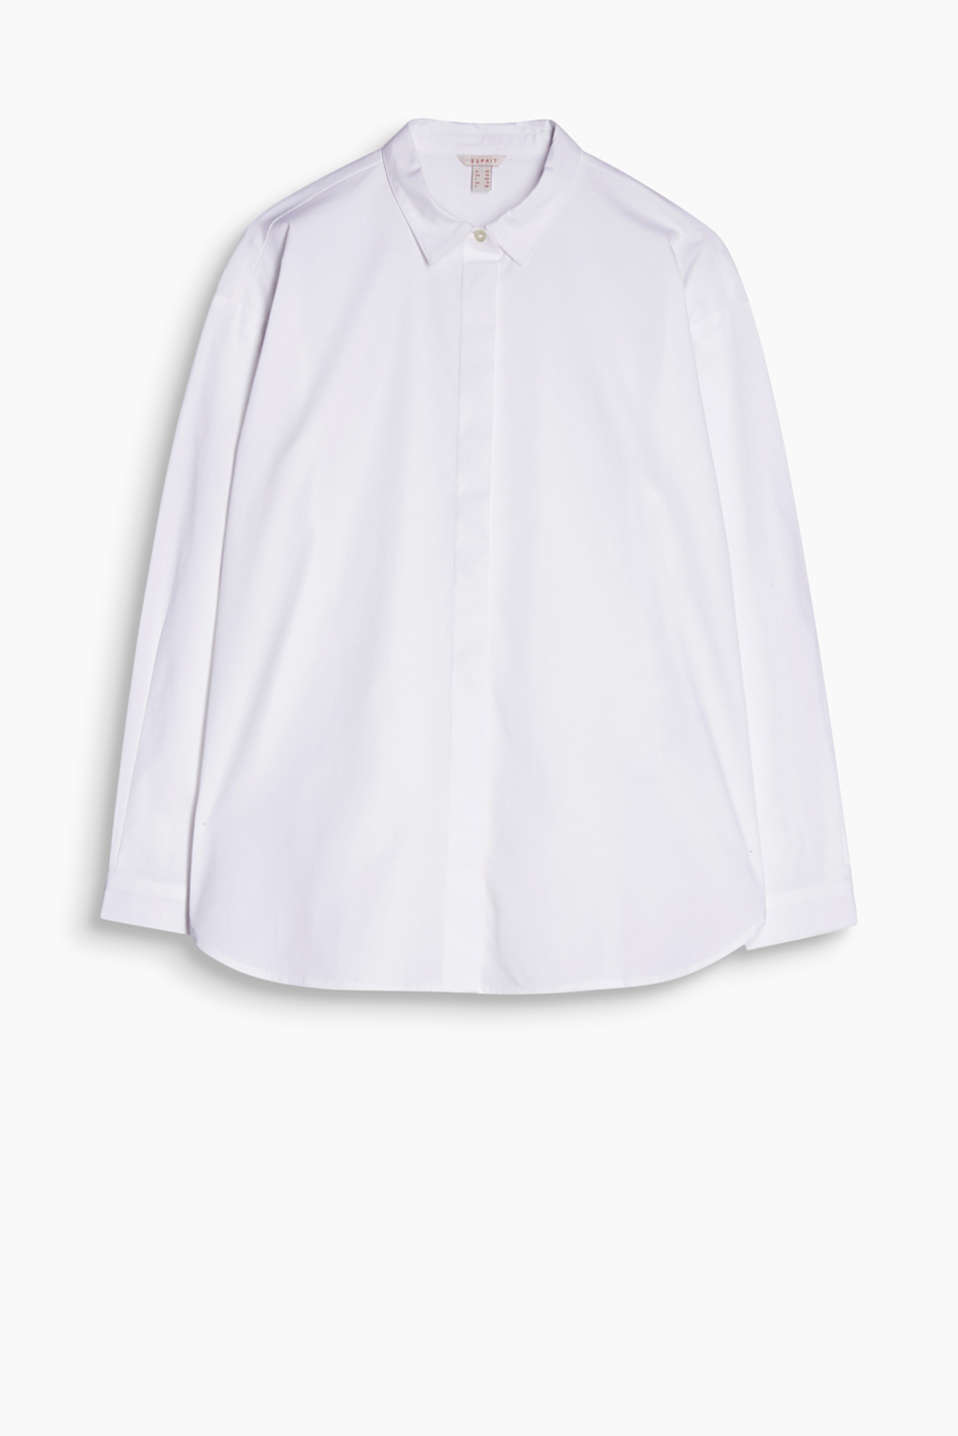 Oversized, stretch cotton blouse with a concealed button placket and round hem